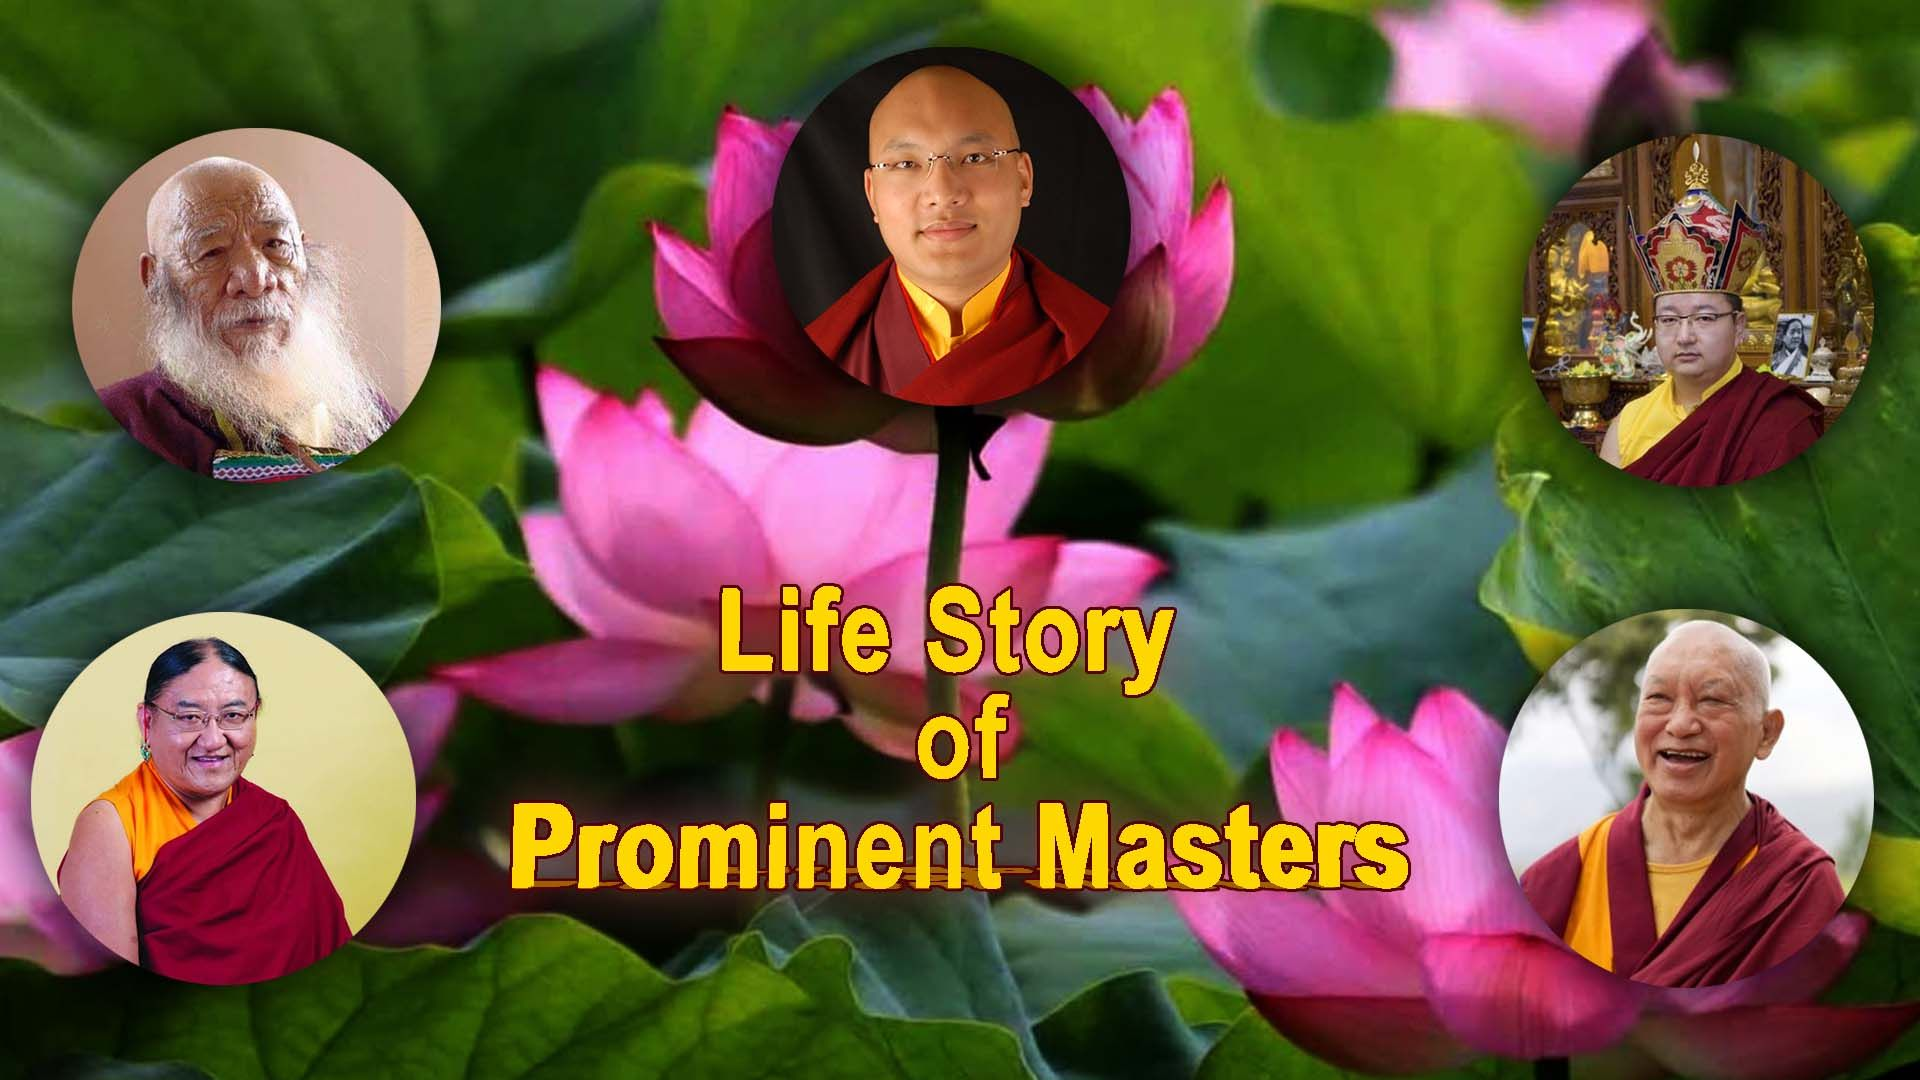 Life Story of Prominent Masters